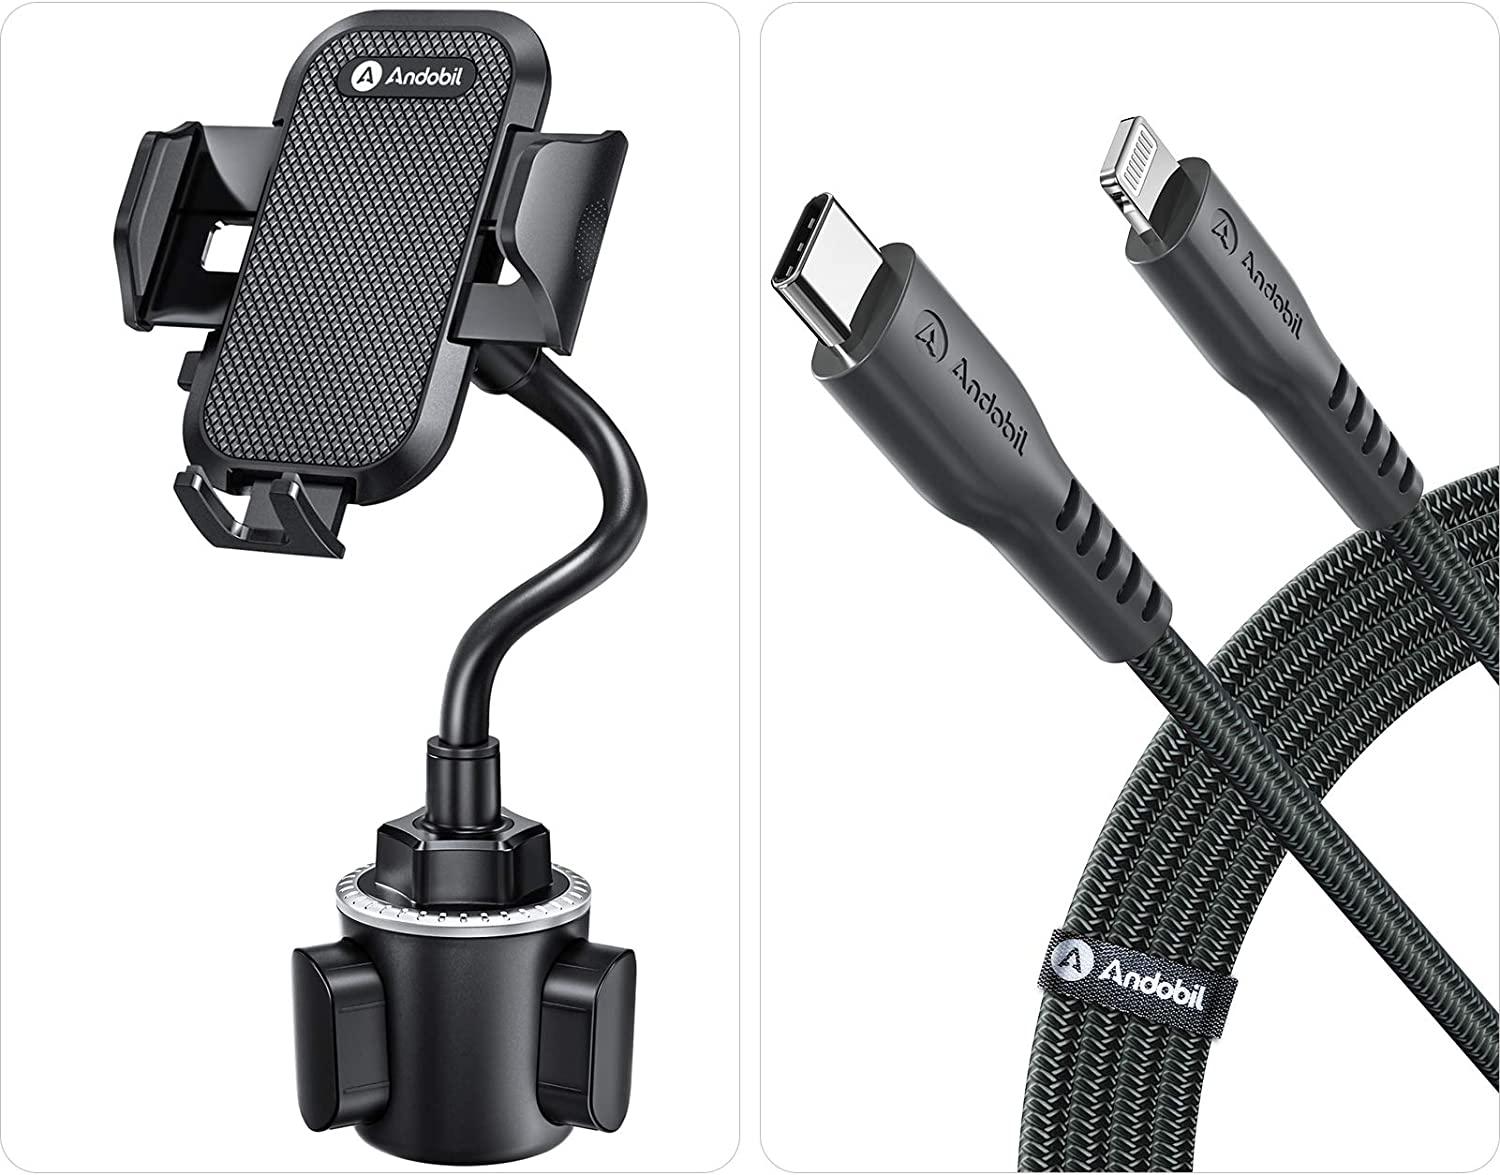 Andobil Cup Holder Phone Mount Ultimate Easy Clamp Hands-Free Cup Phone Holder for Car + Andobil USB C to Lightning Cable 6FT, Apple MFi Certified iPhone Fast Charger Cable